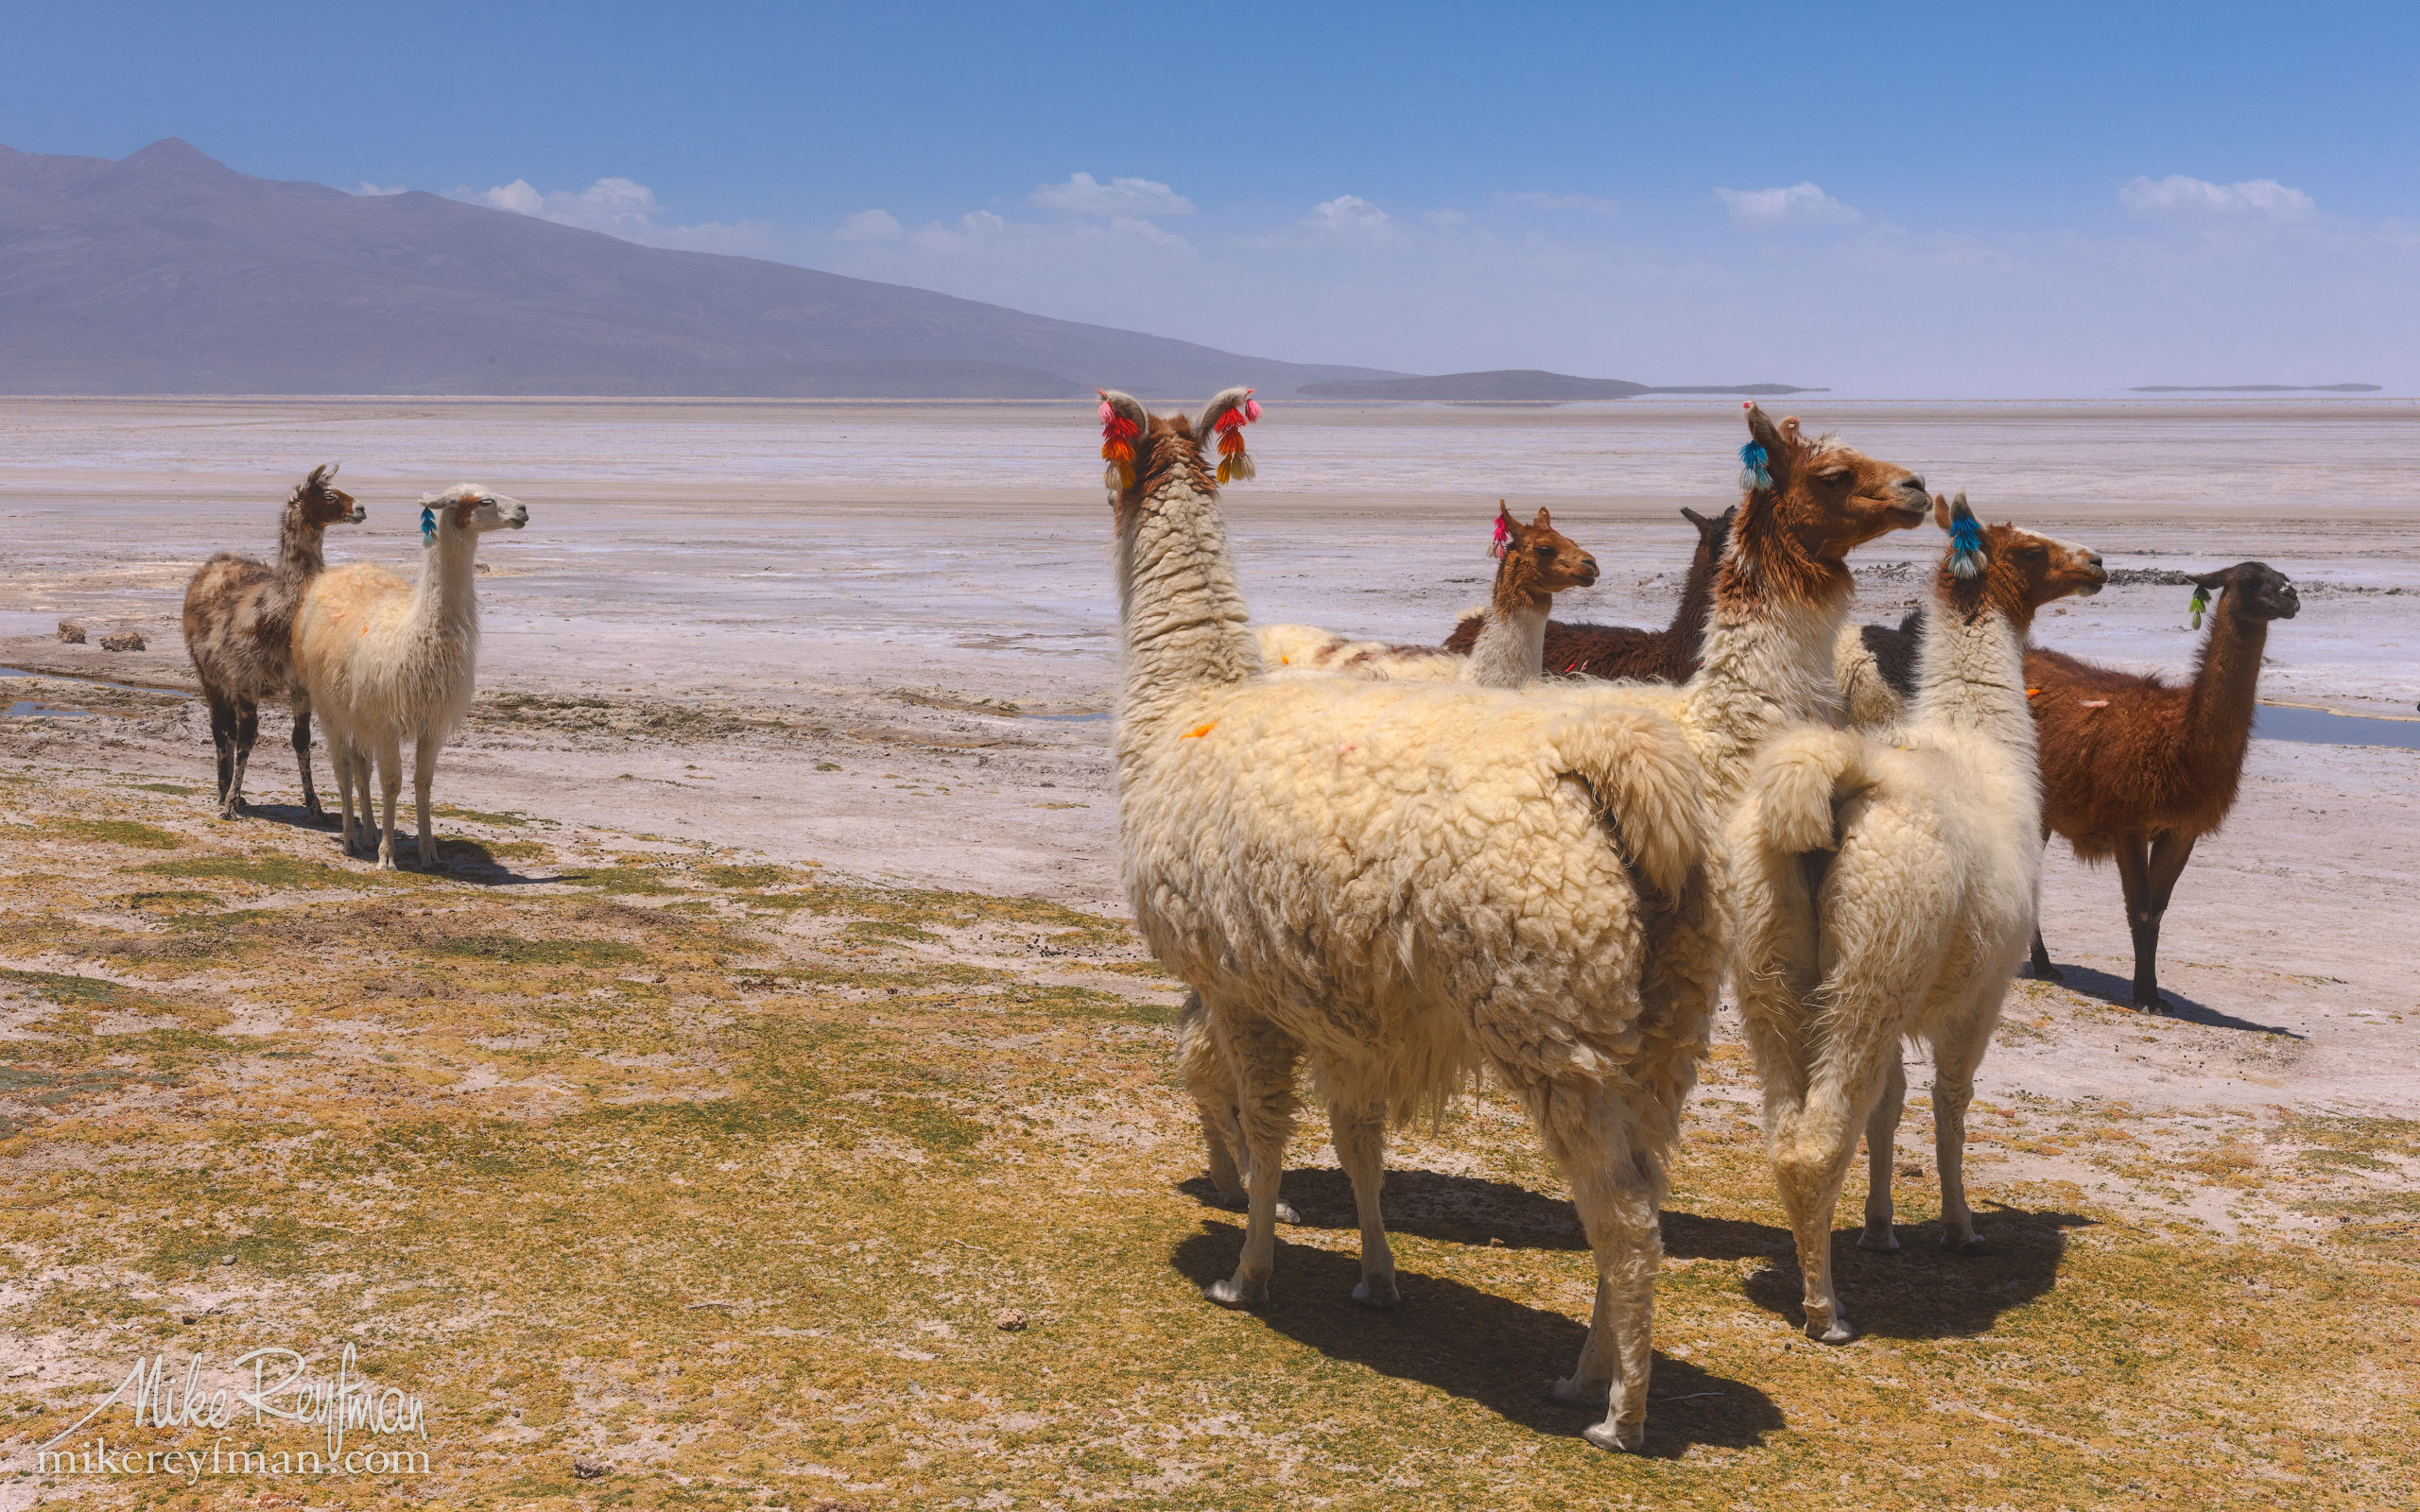 Member of the Camelid, the Llama, is the national animal of Bolivia. Altiplano, Bolivia. AA1-AIR2495 - Atacama and Altiplano. The Driest Desert and The High Plain - Mike Reyfman Photography